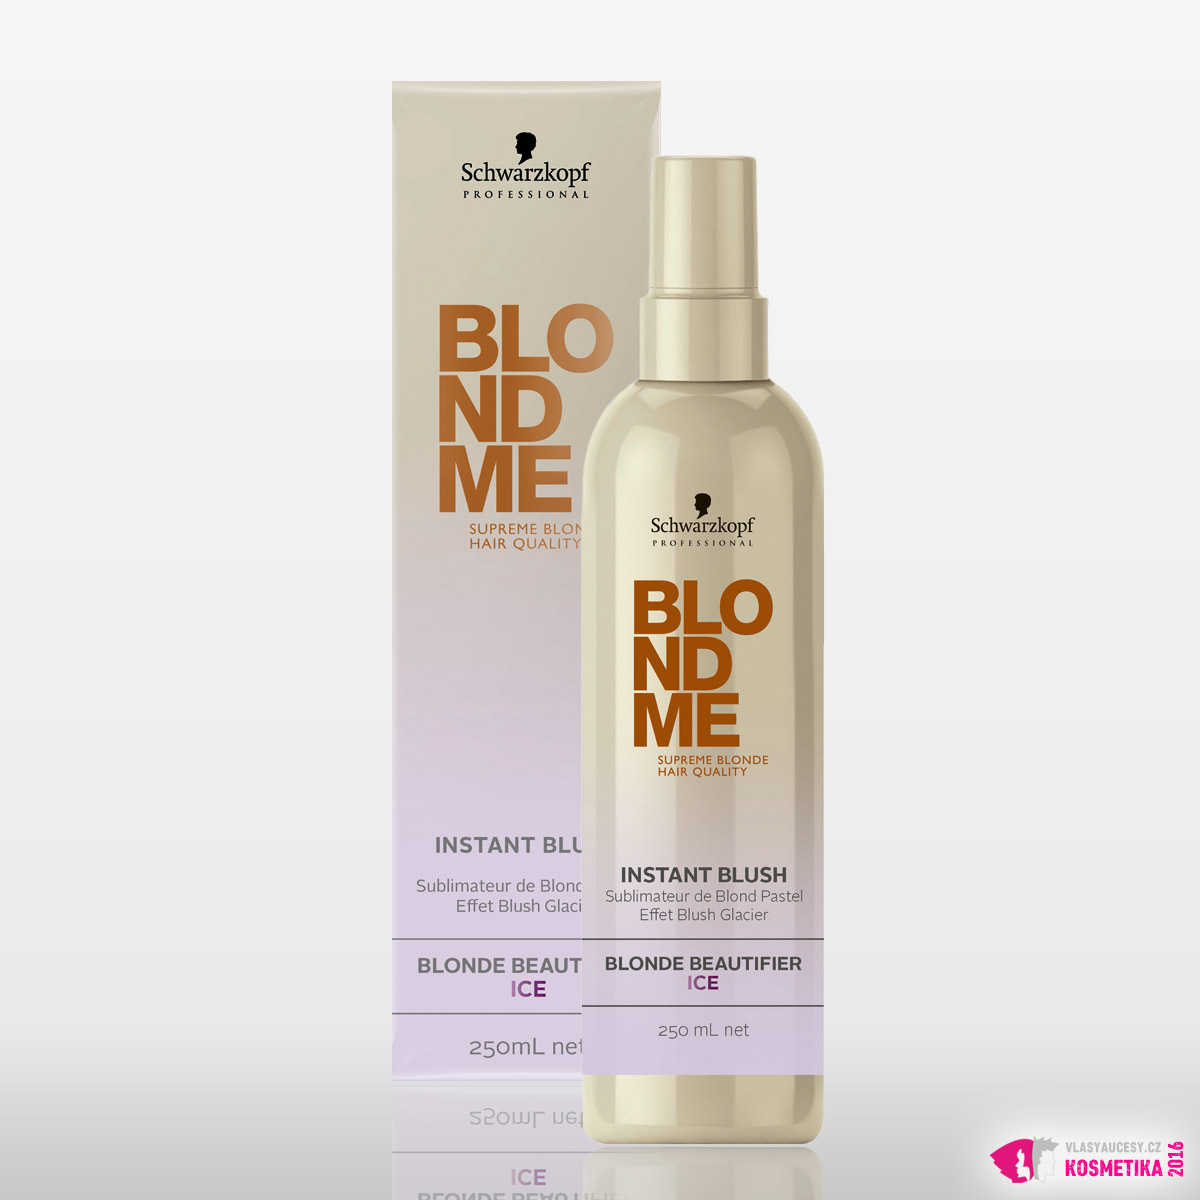 BlondMe Instant Blush - Blonde Beautifier Ice od Schwarzkopf Professional